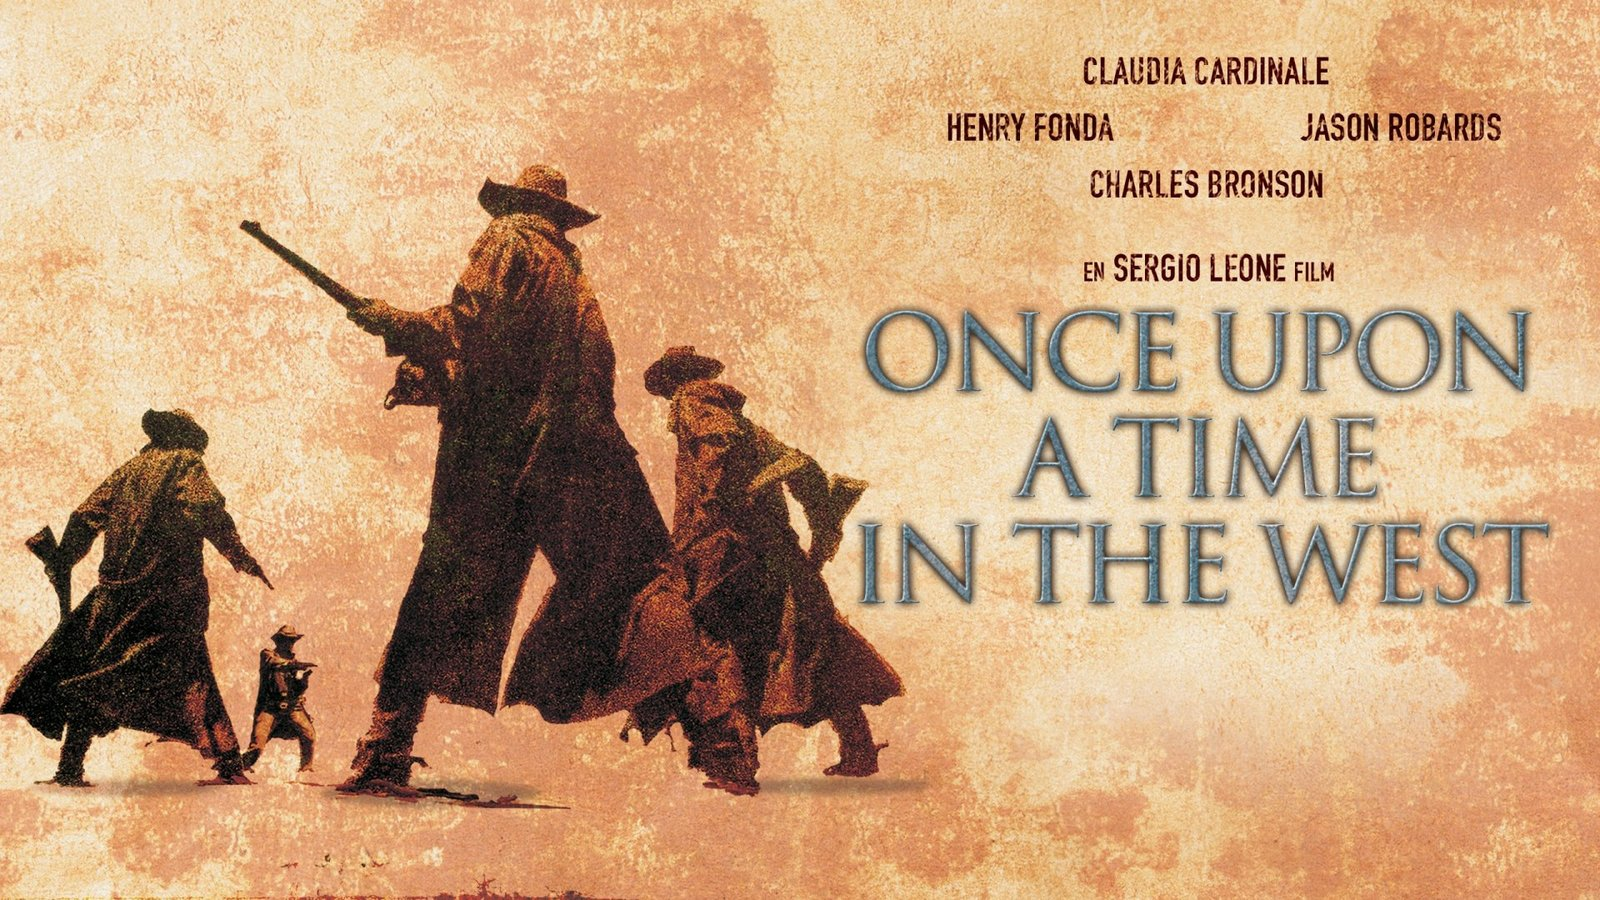 Once Upon A Time In The West - C'era una volta il West